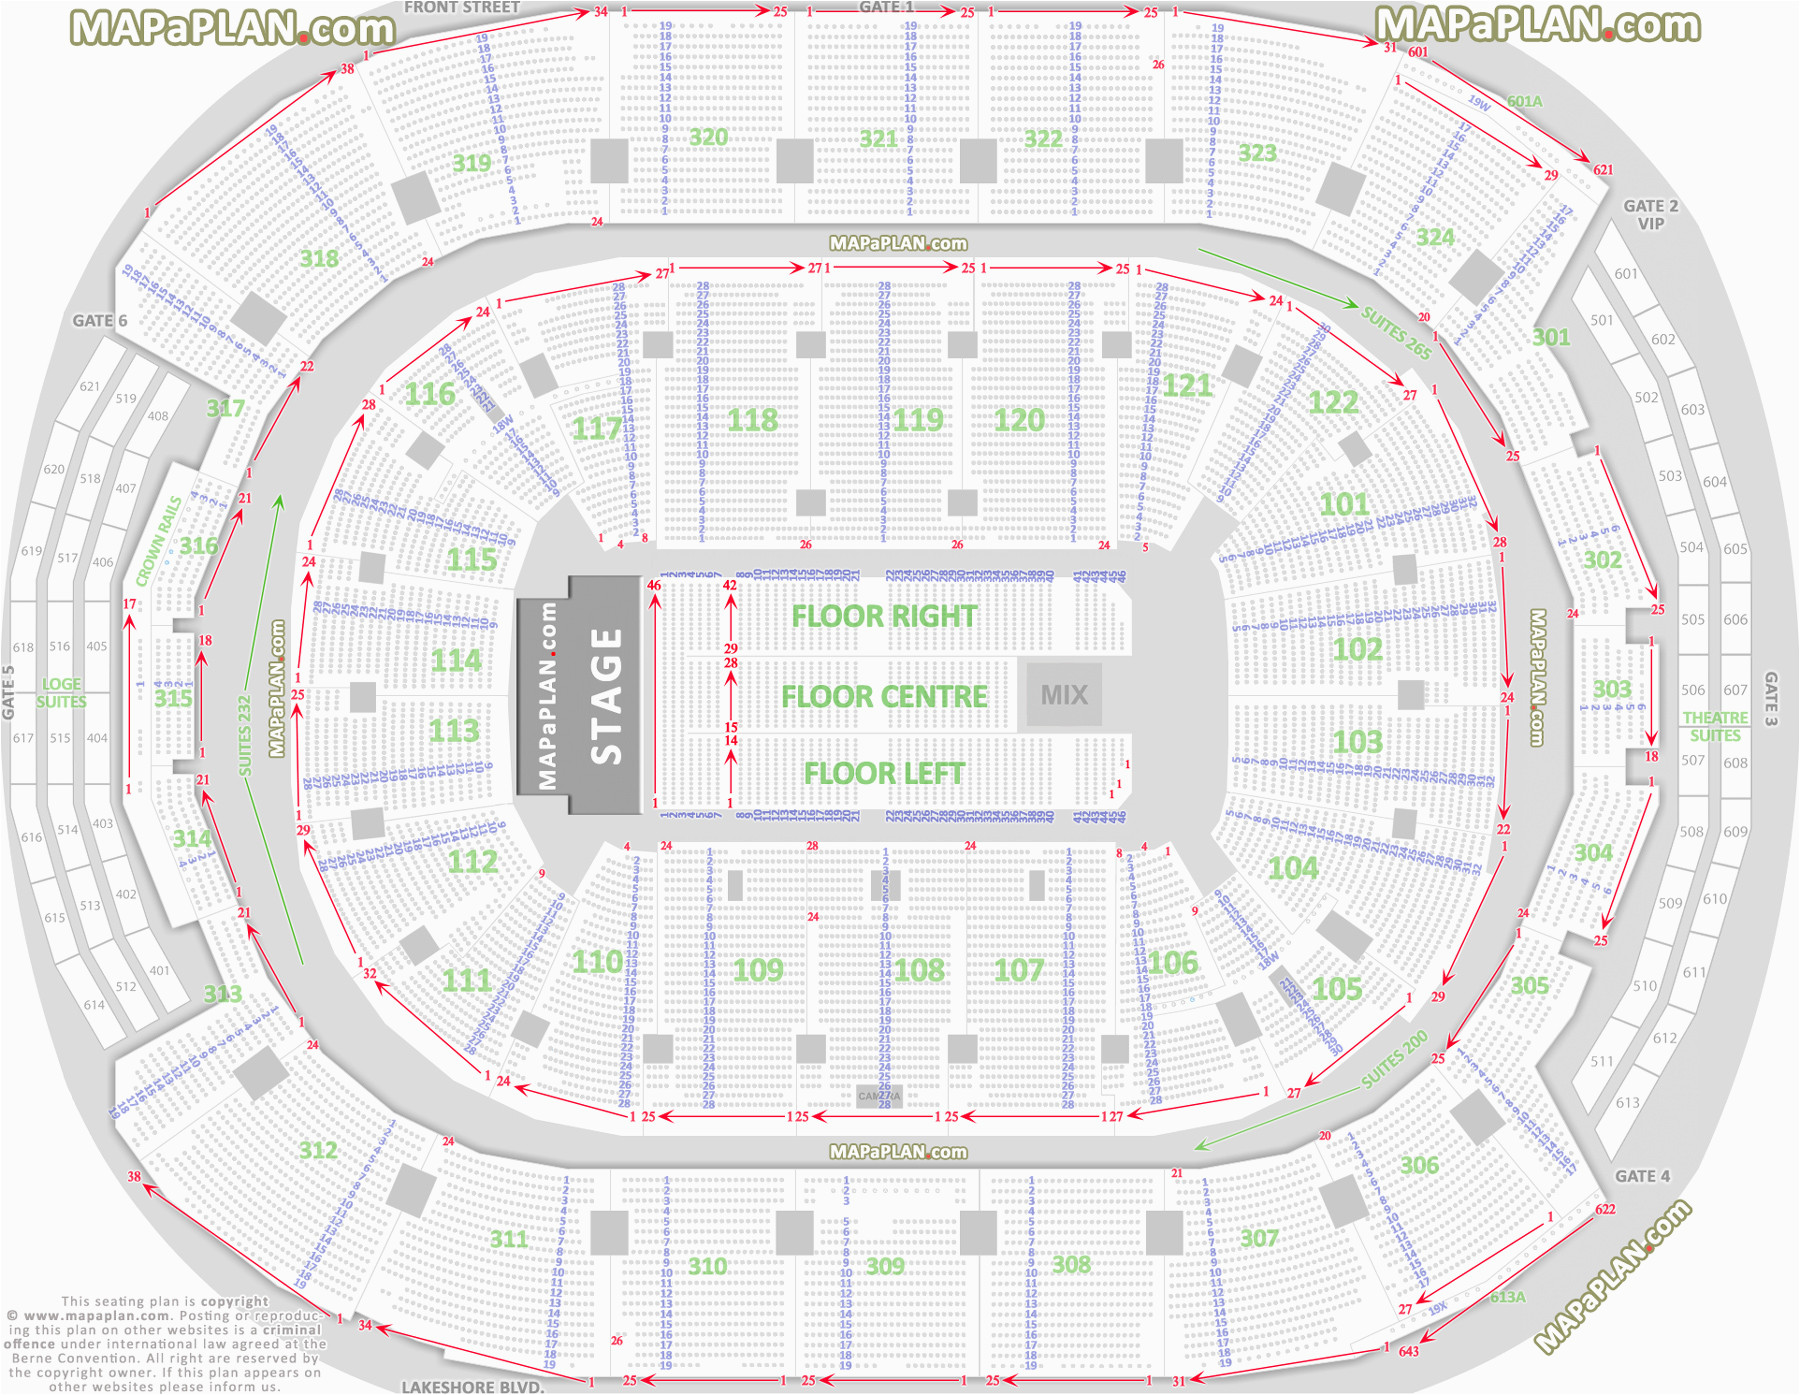 Seating Map Air Canada Centre Stadium Seat Numbers Online Charts Collection